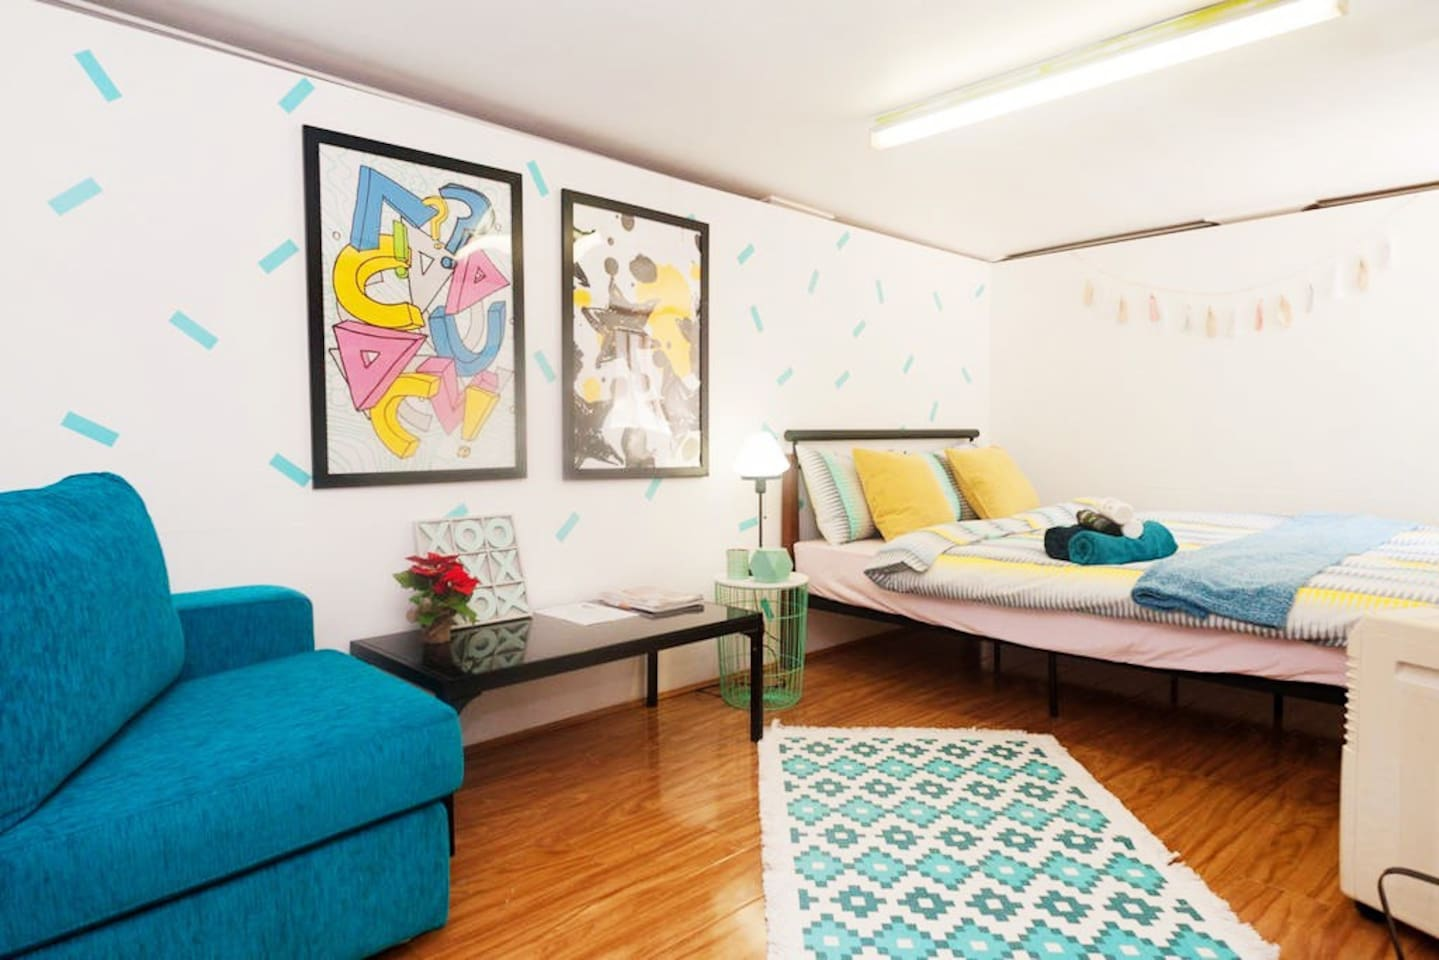 You will have a whole basement for yourself, which includes a private bedroom and a study room ! It is super spacious and private.